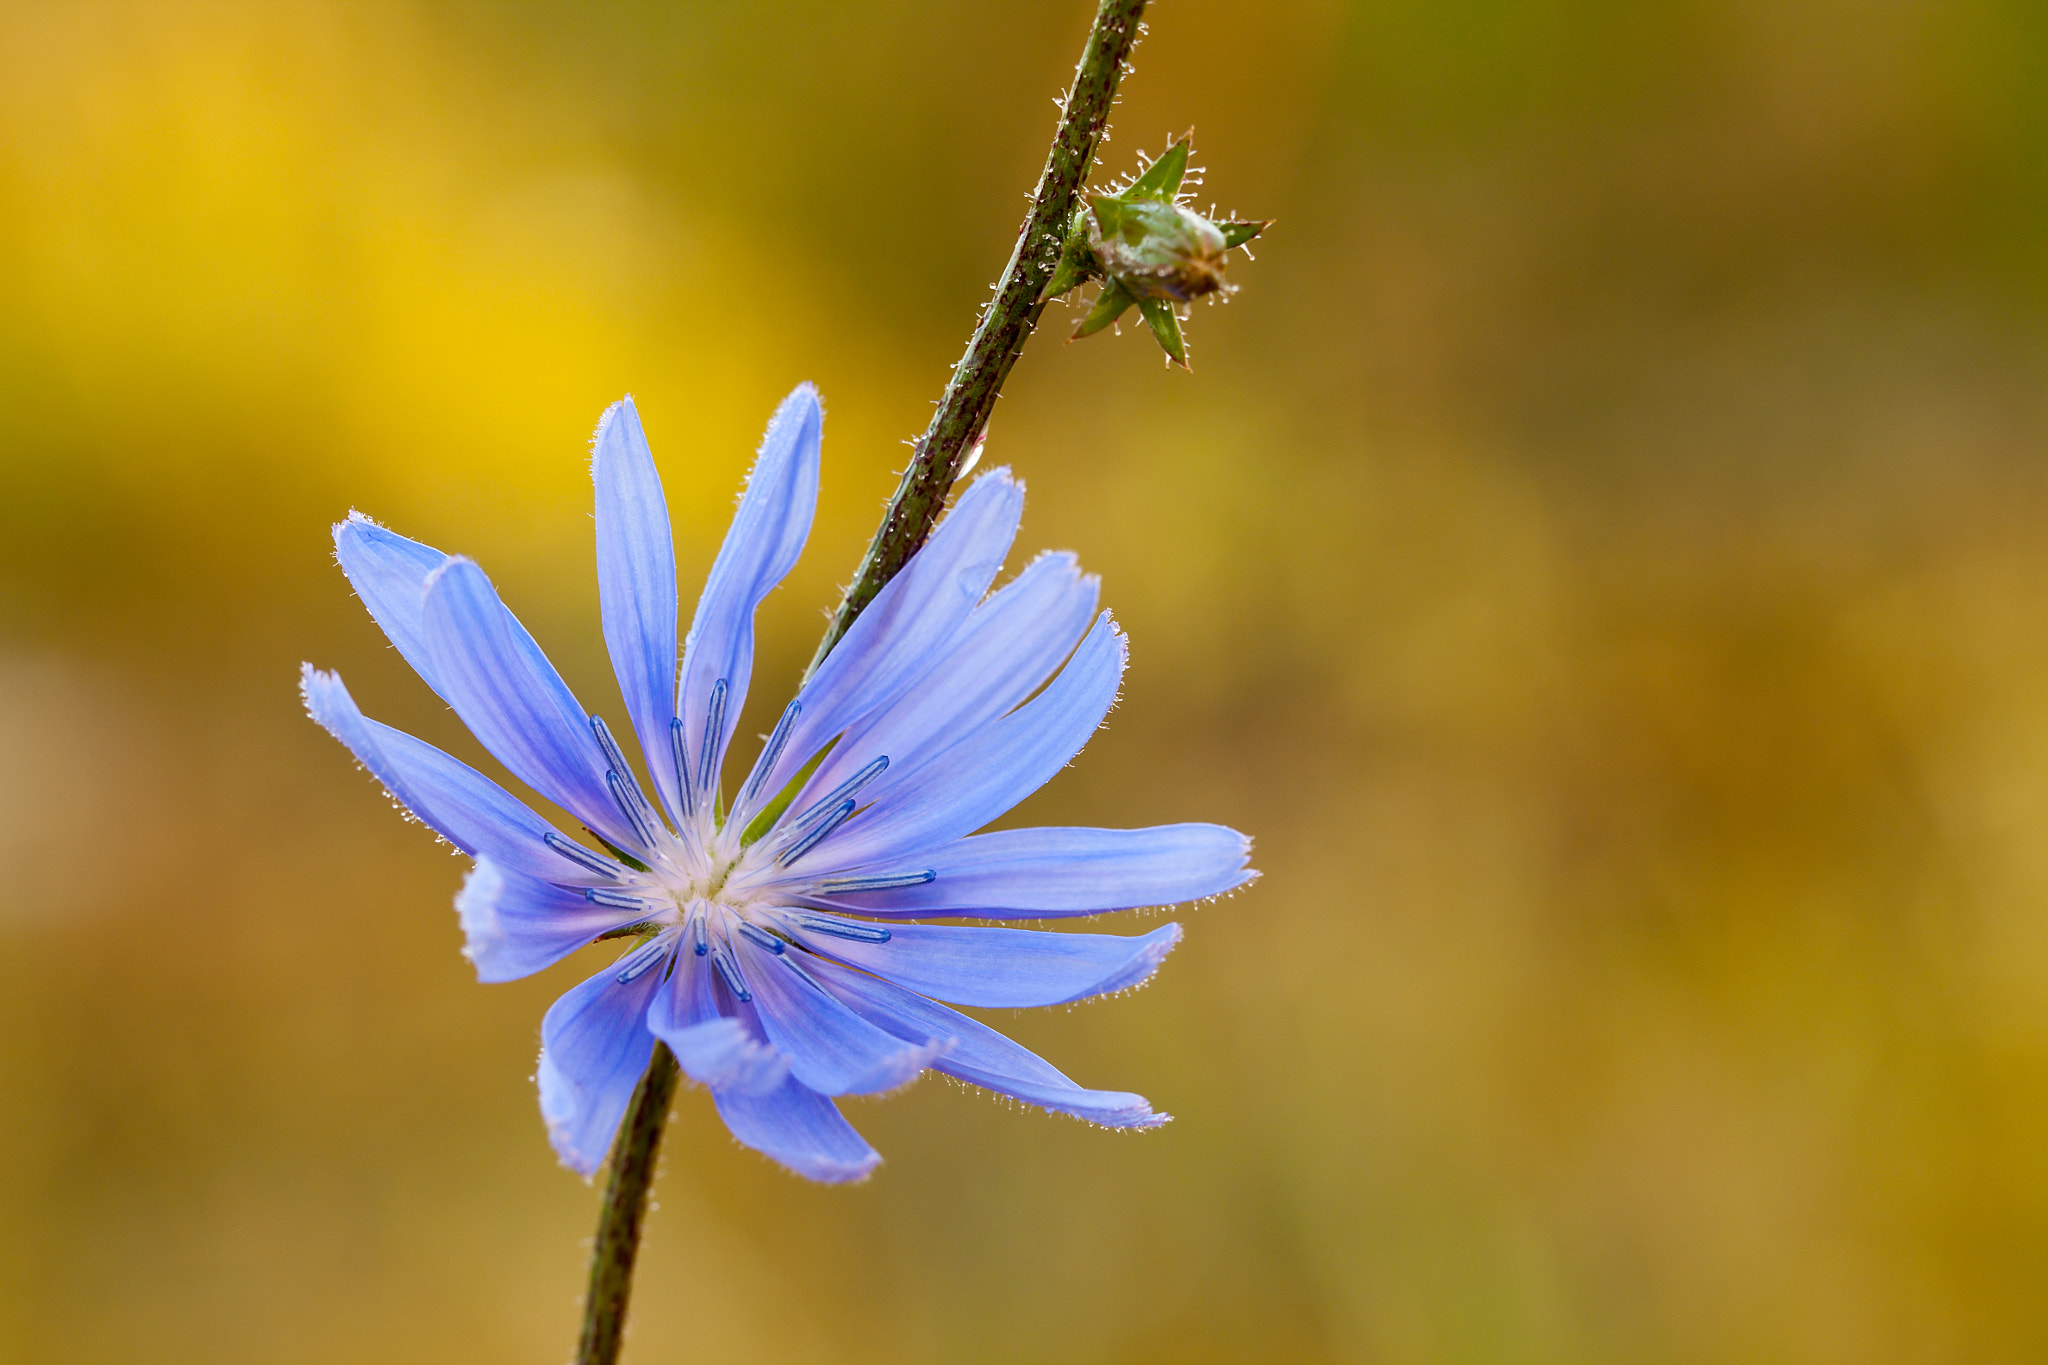 Photograph One flower by Thomas Forysiak on 500px